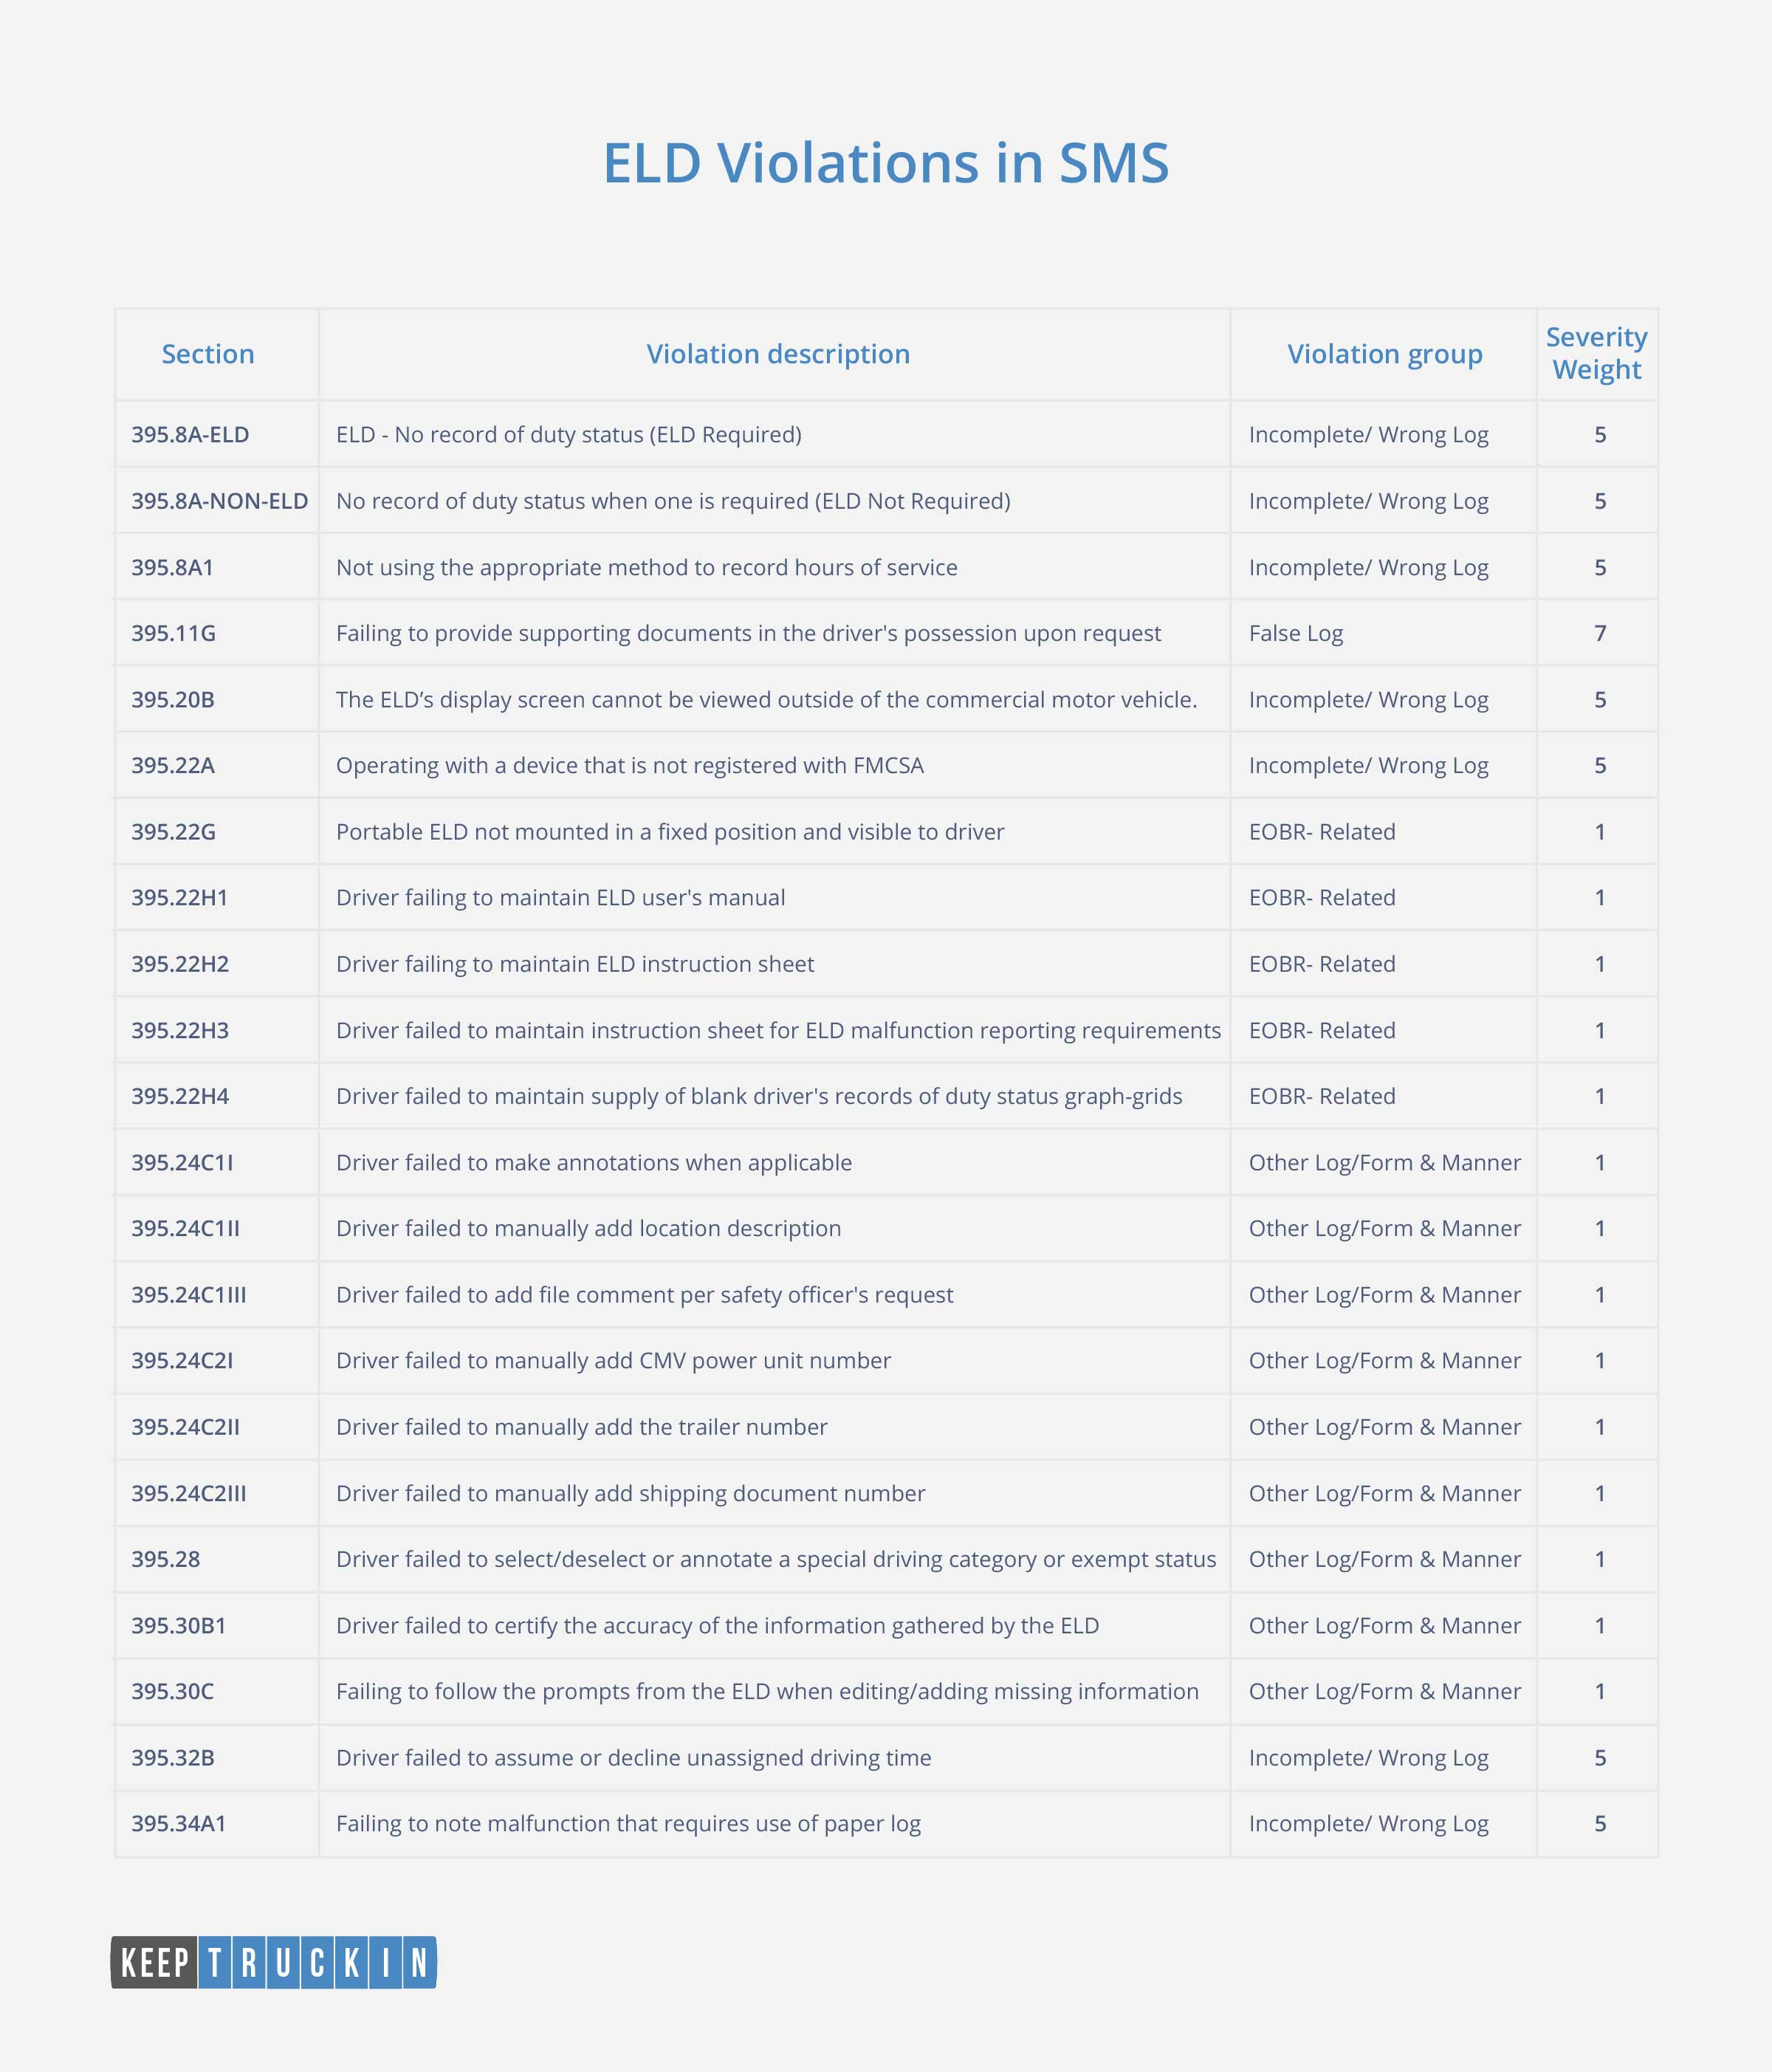 22 ELD related violations - SMS scores - infographic